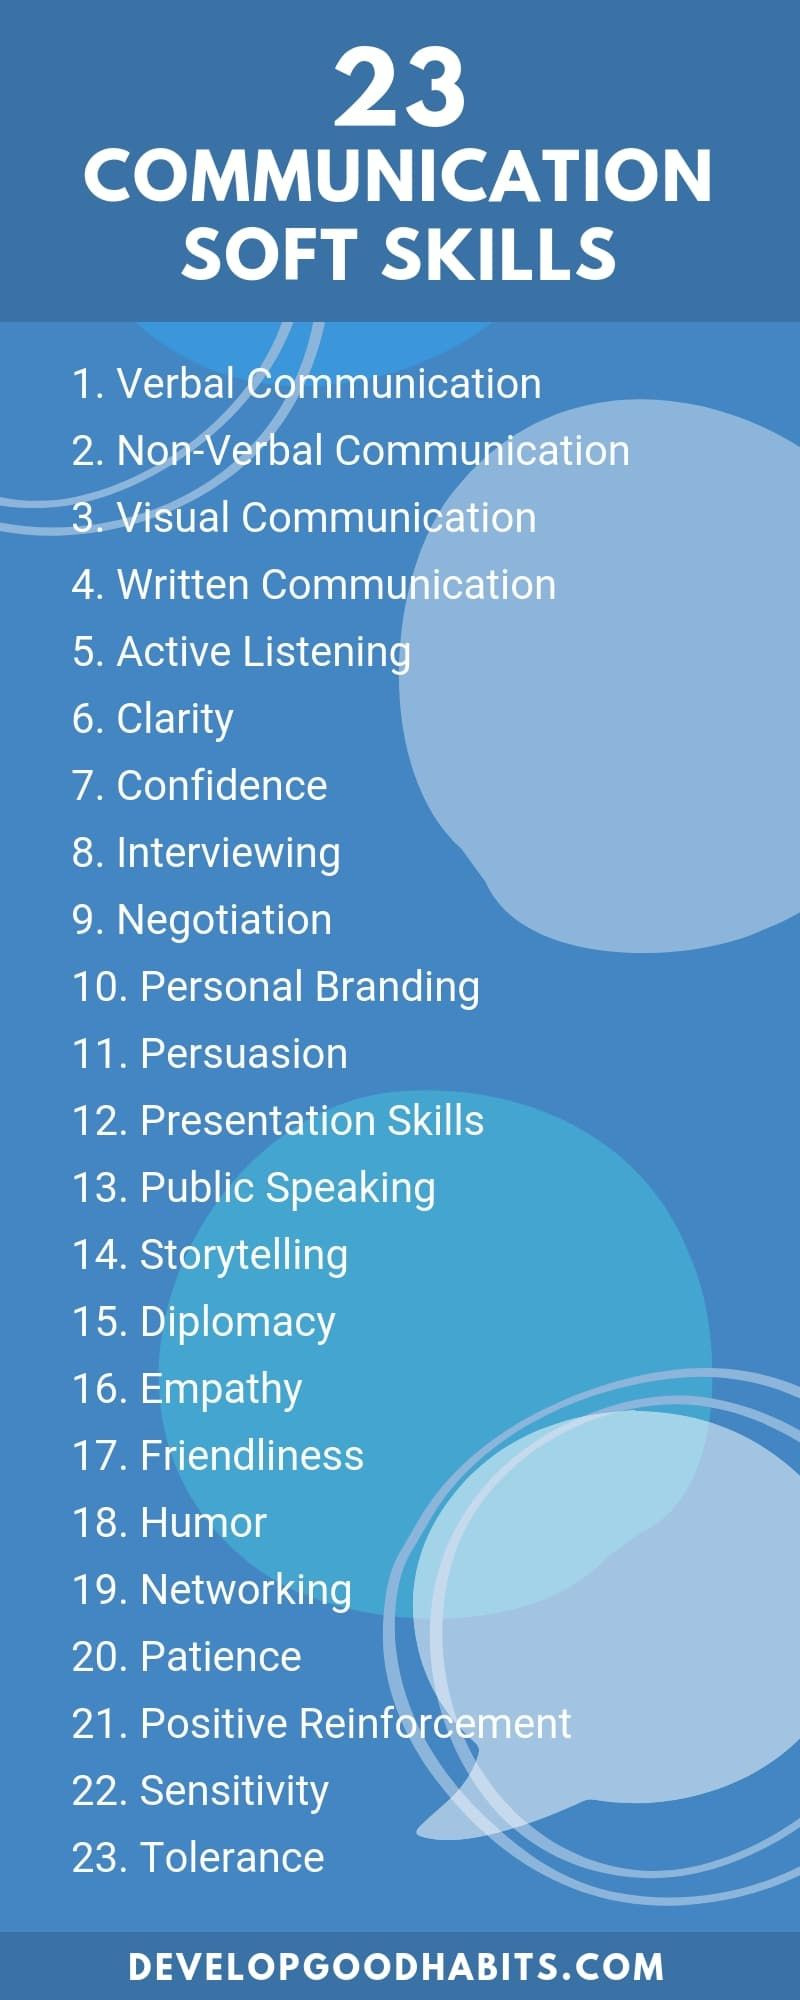 135 Soft Skills List To Stand Out On A Resume Or Job Application Effective Communication Skills List Of Skills Soft Skills